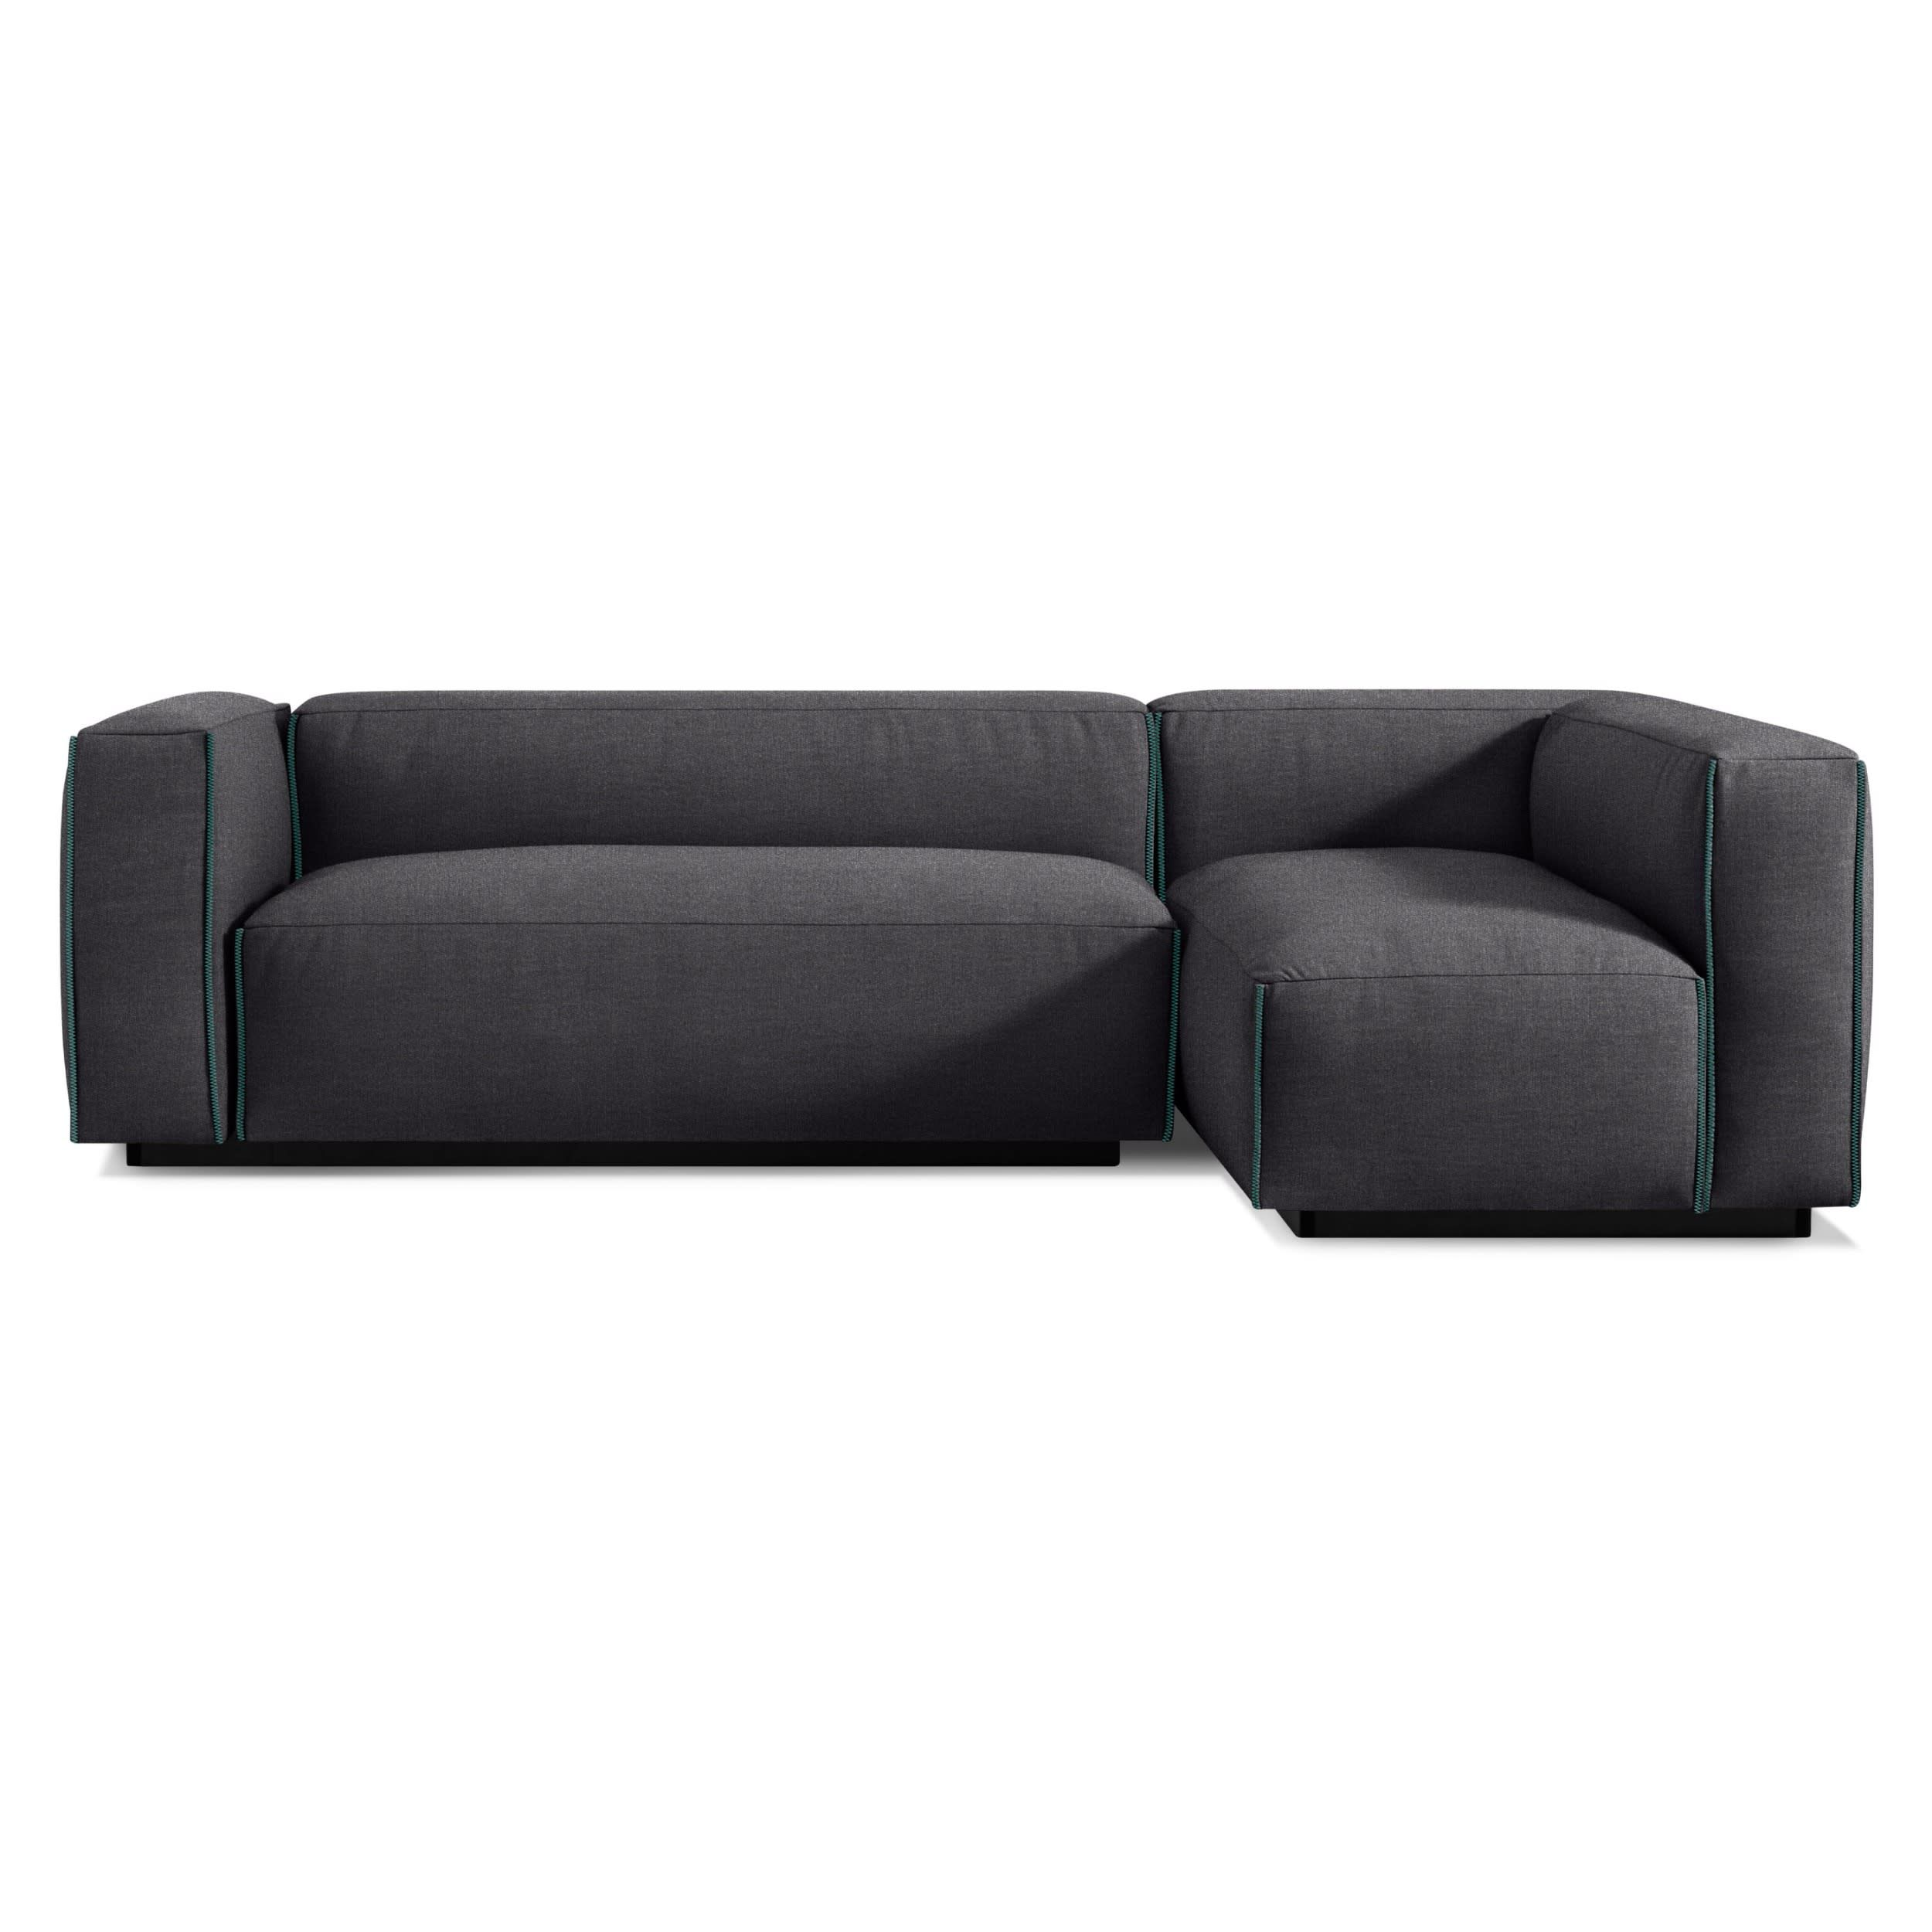 Cleon Small Sectional Sofa Small Sectional Sofa Modern Sectional Modern Sofa Sectional